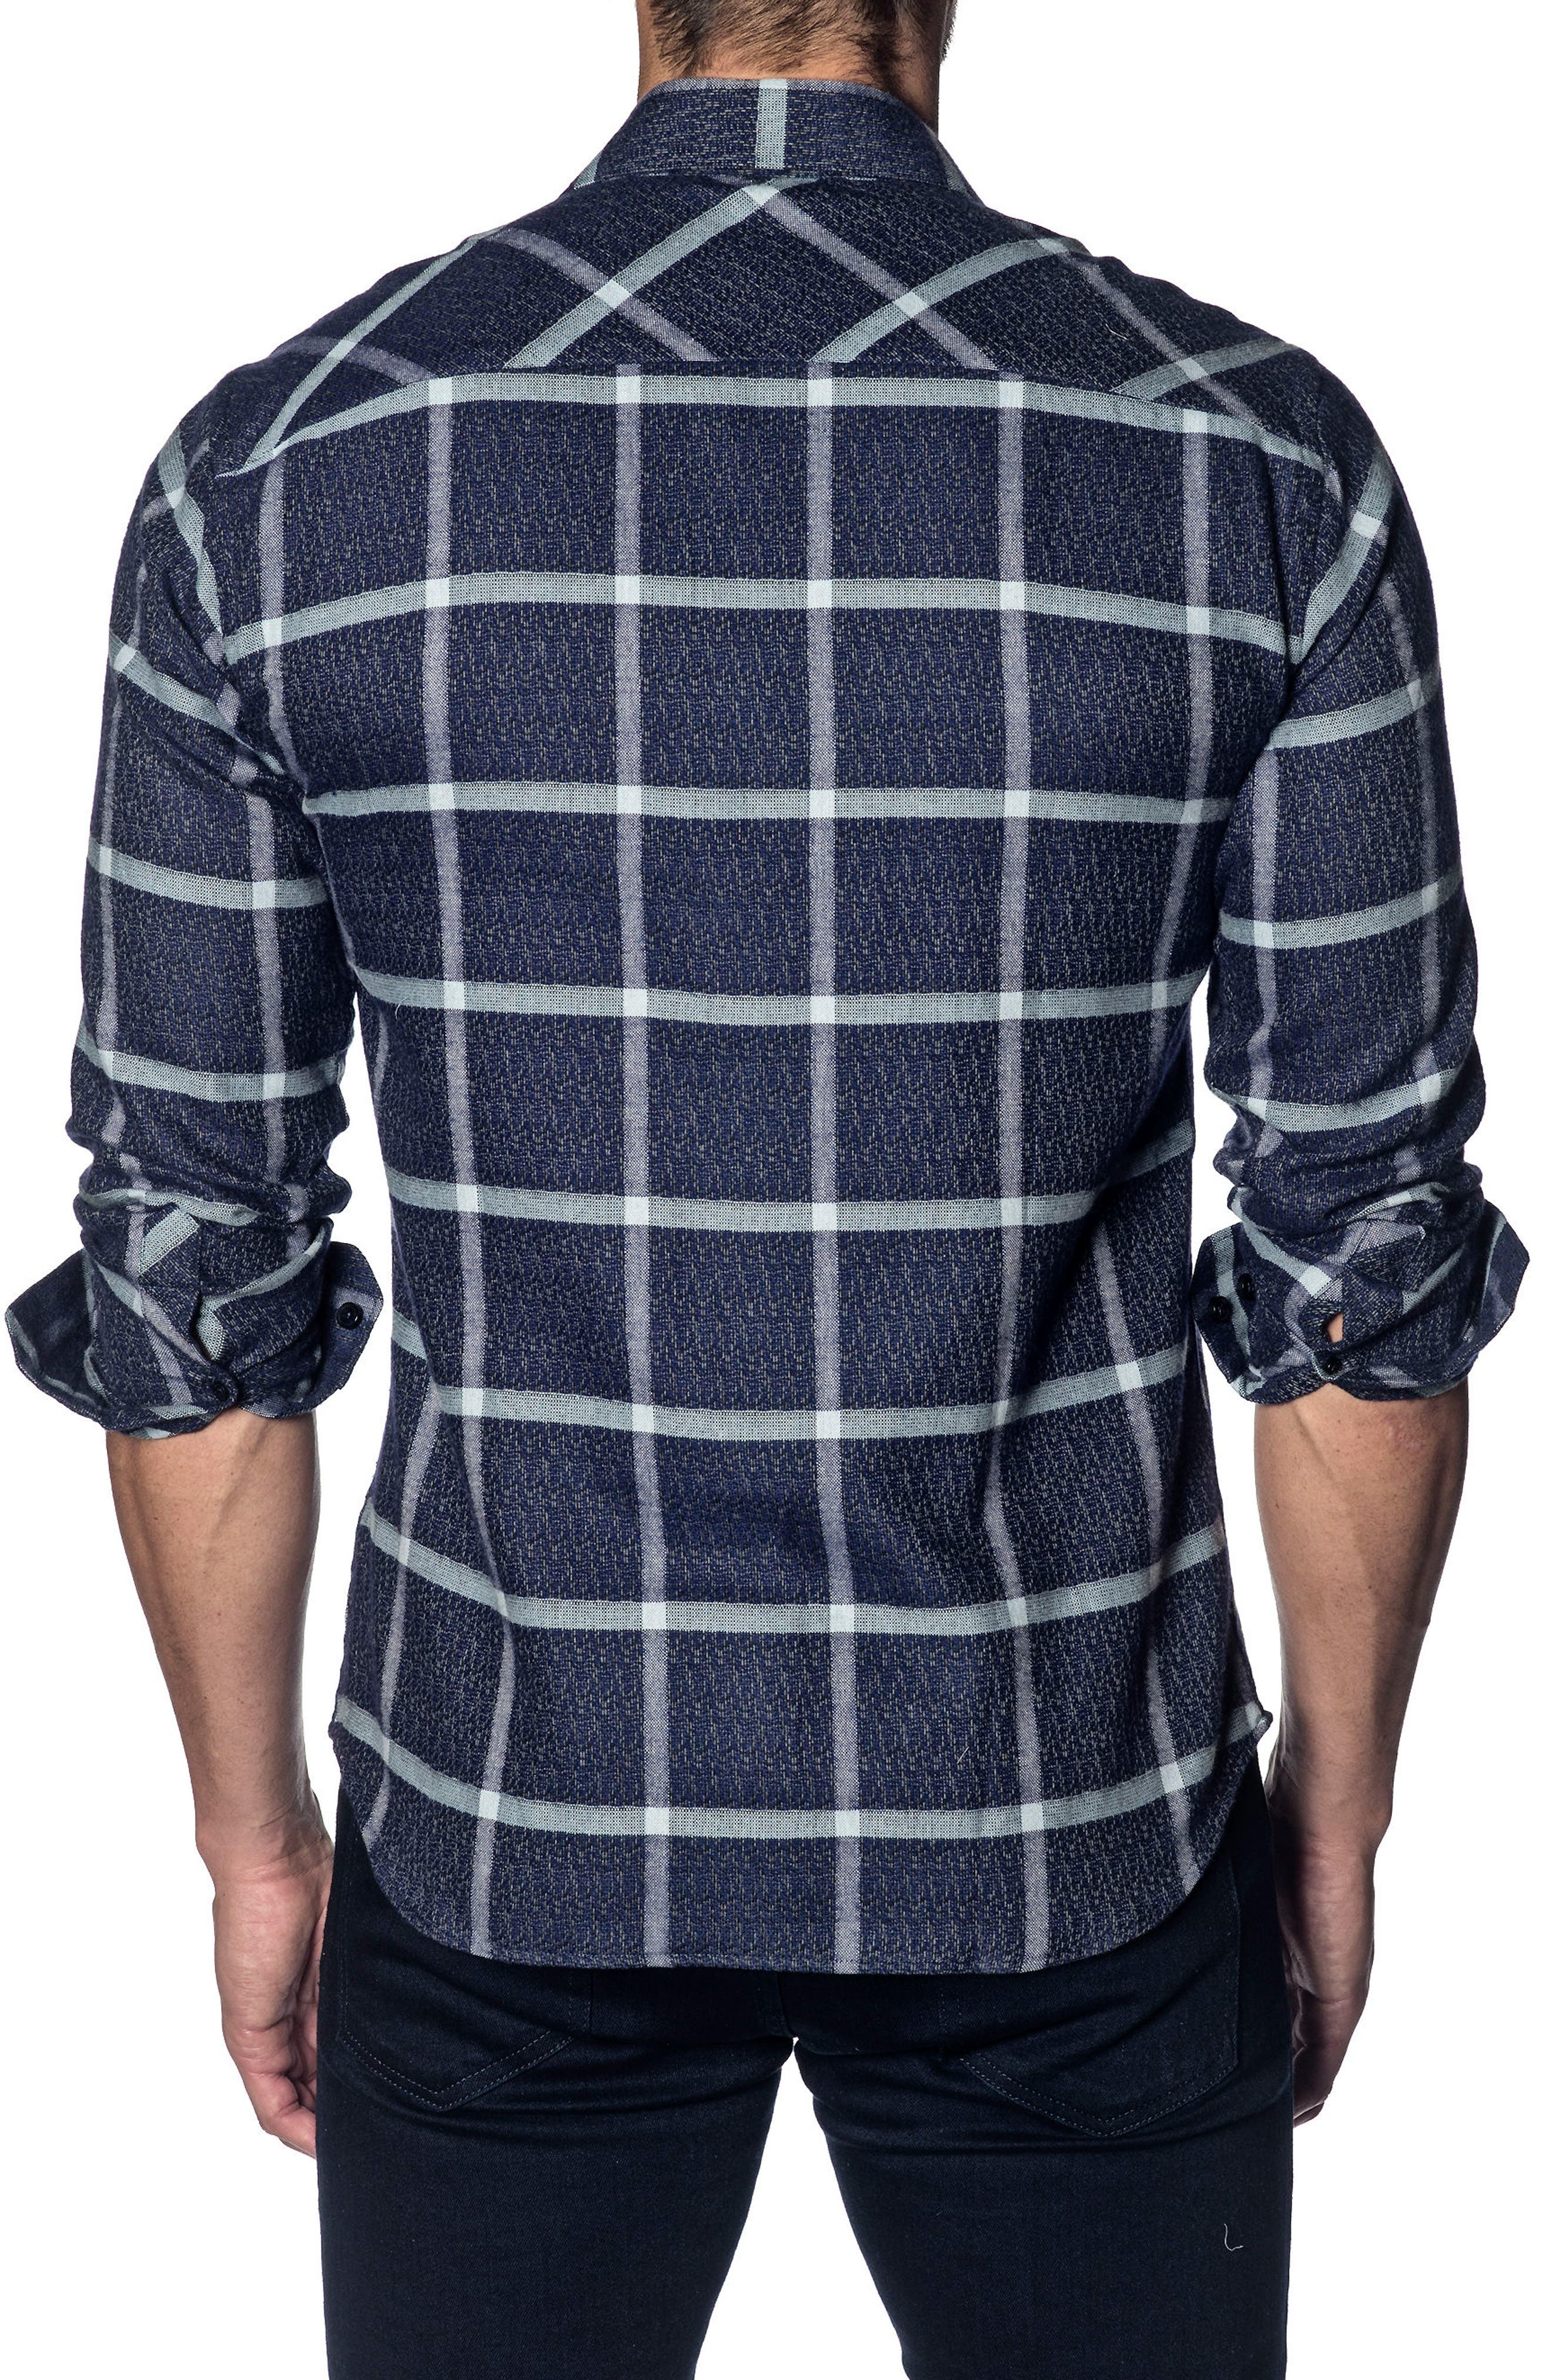 Trim Fit Grid Sport Shirt,                             Alternate thumbnail 2, color,                             Dark Navy Plaid